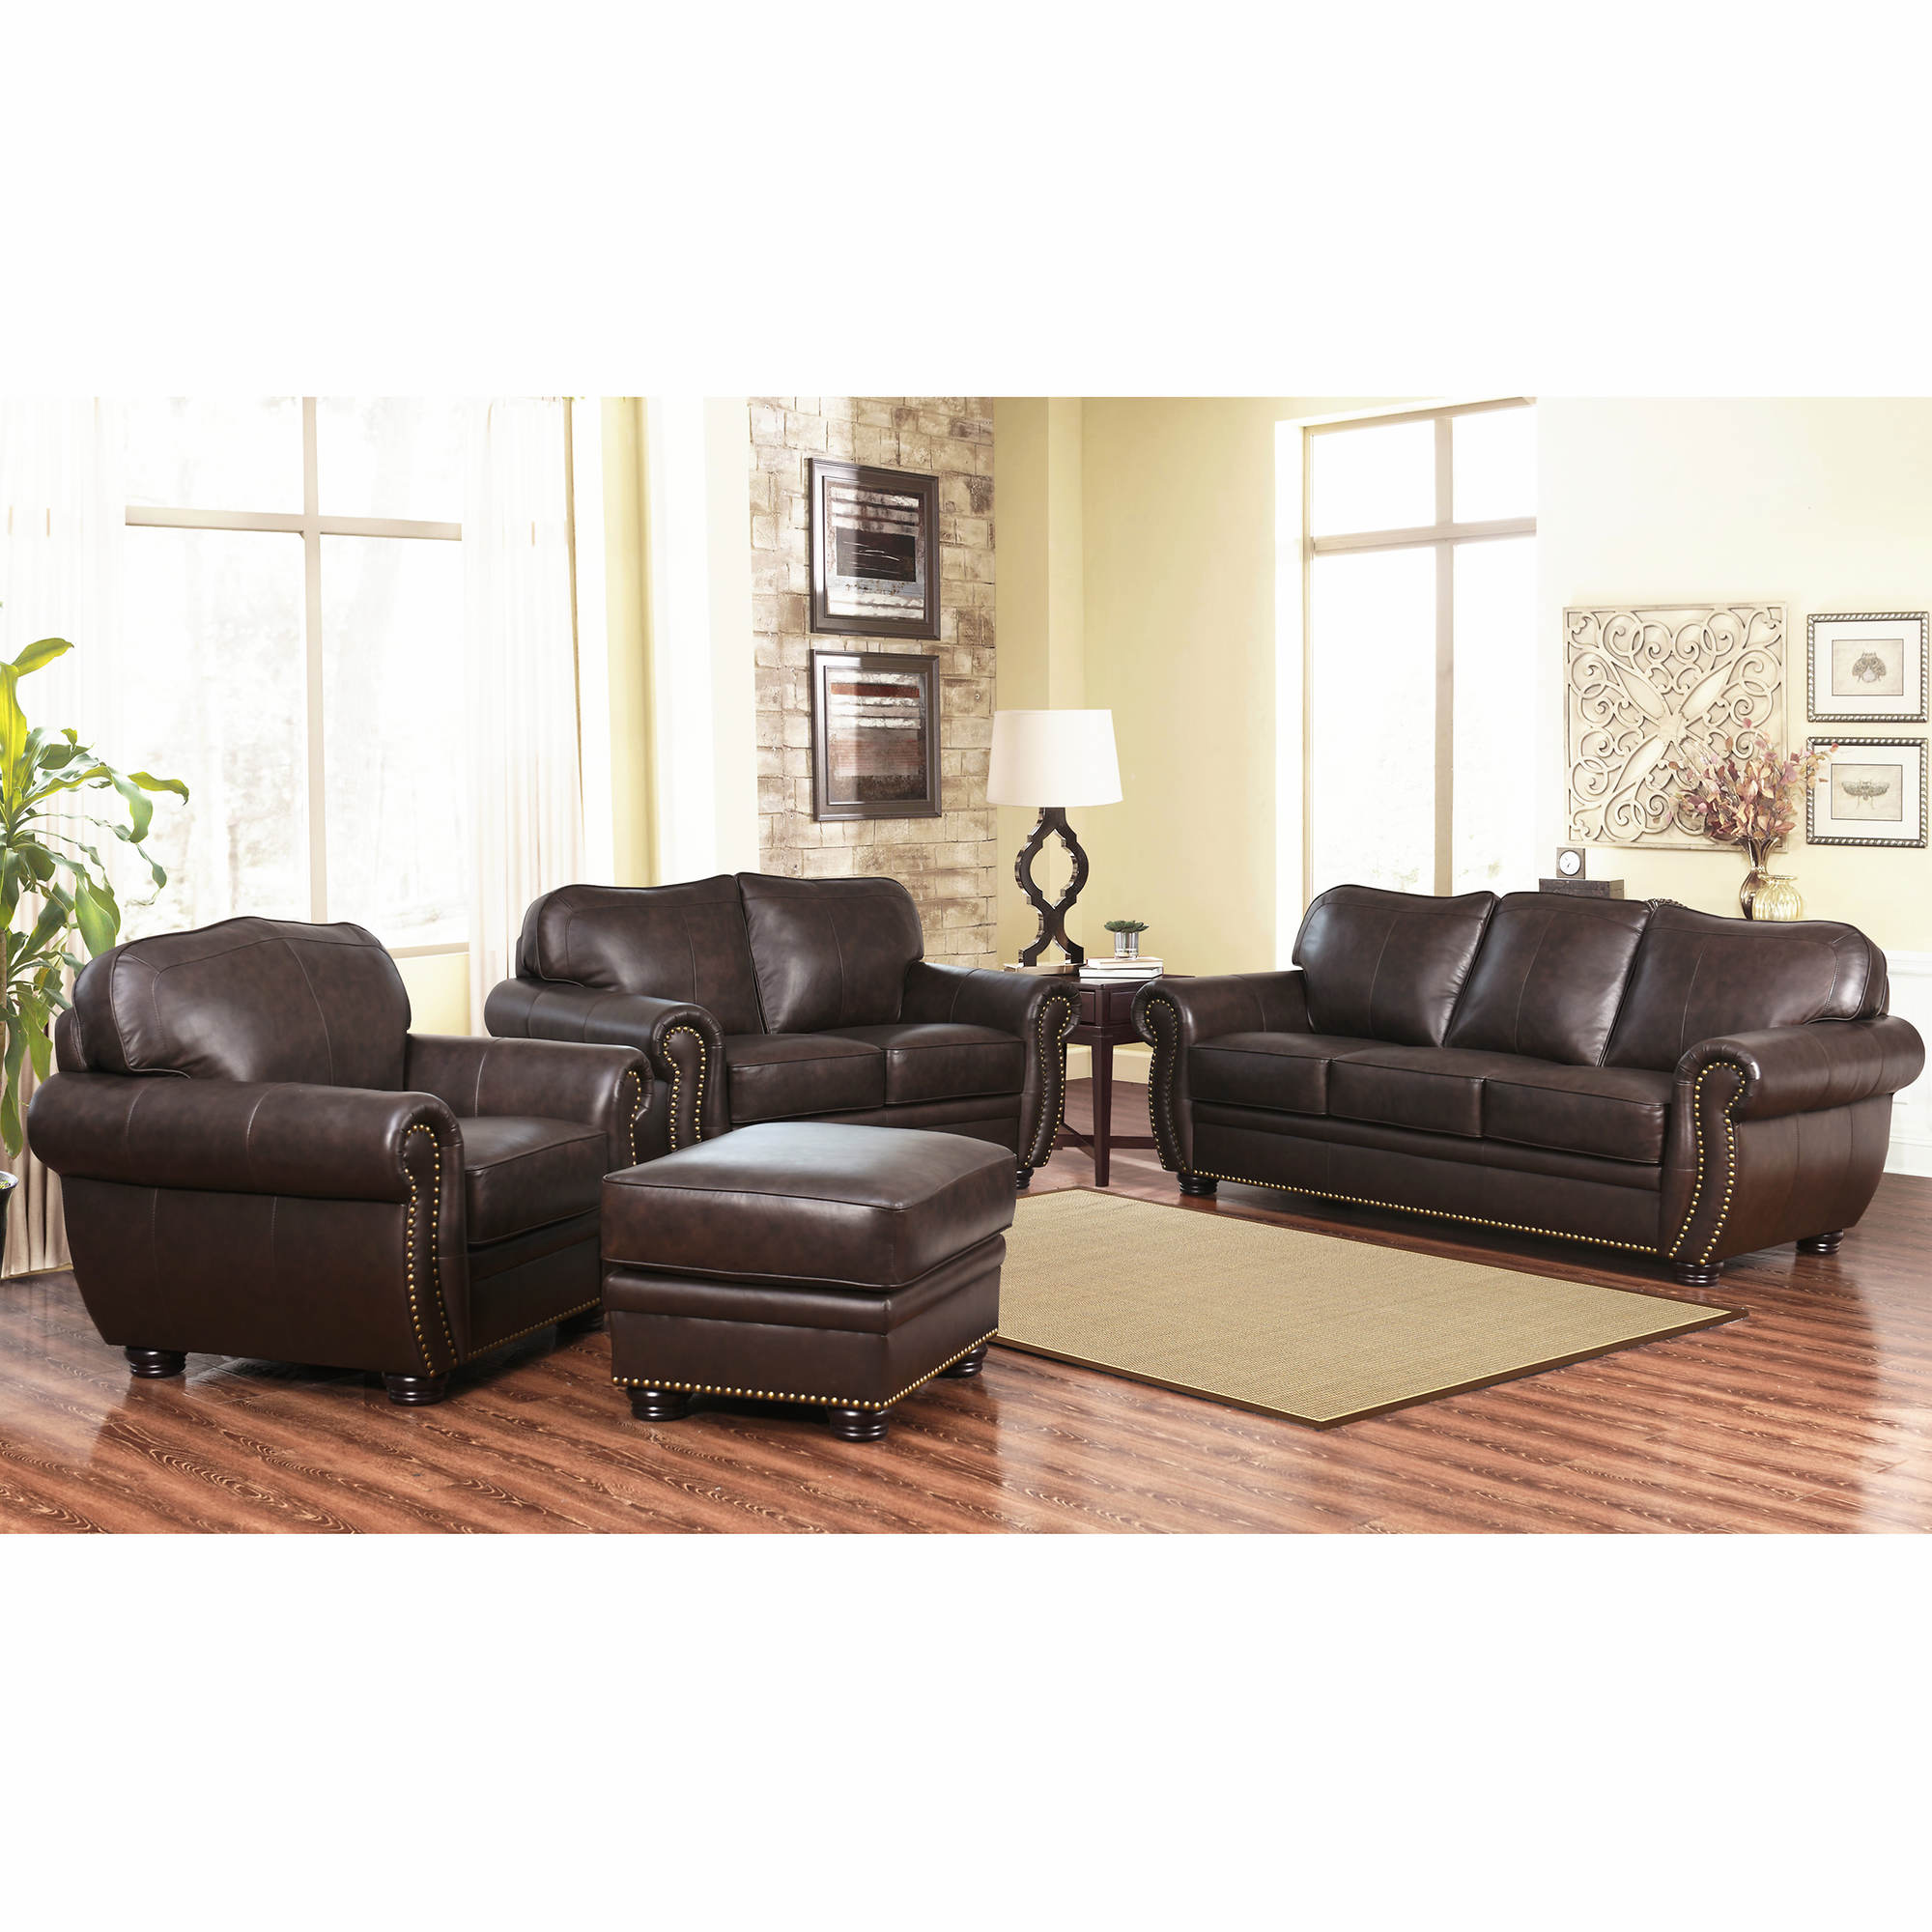 Top Grain Leather Living Room Set Abbyson Living Barrington 4 Pc Top Grain Leather Living Room Set